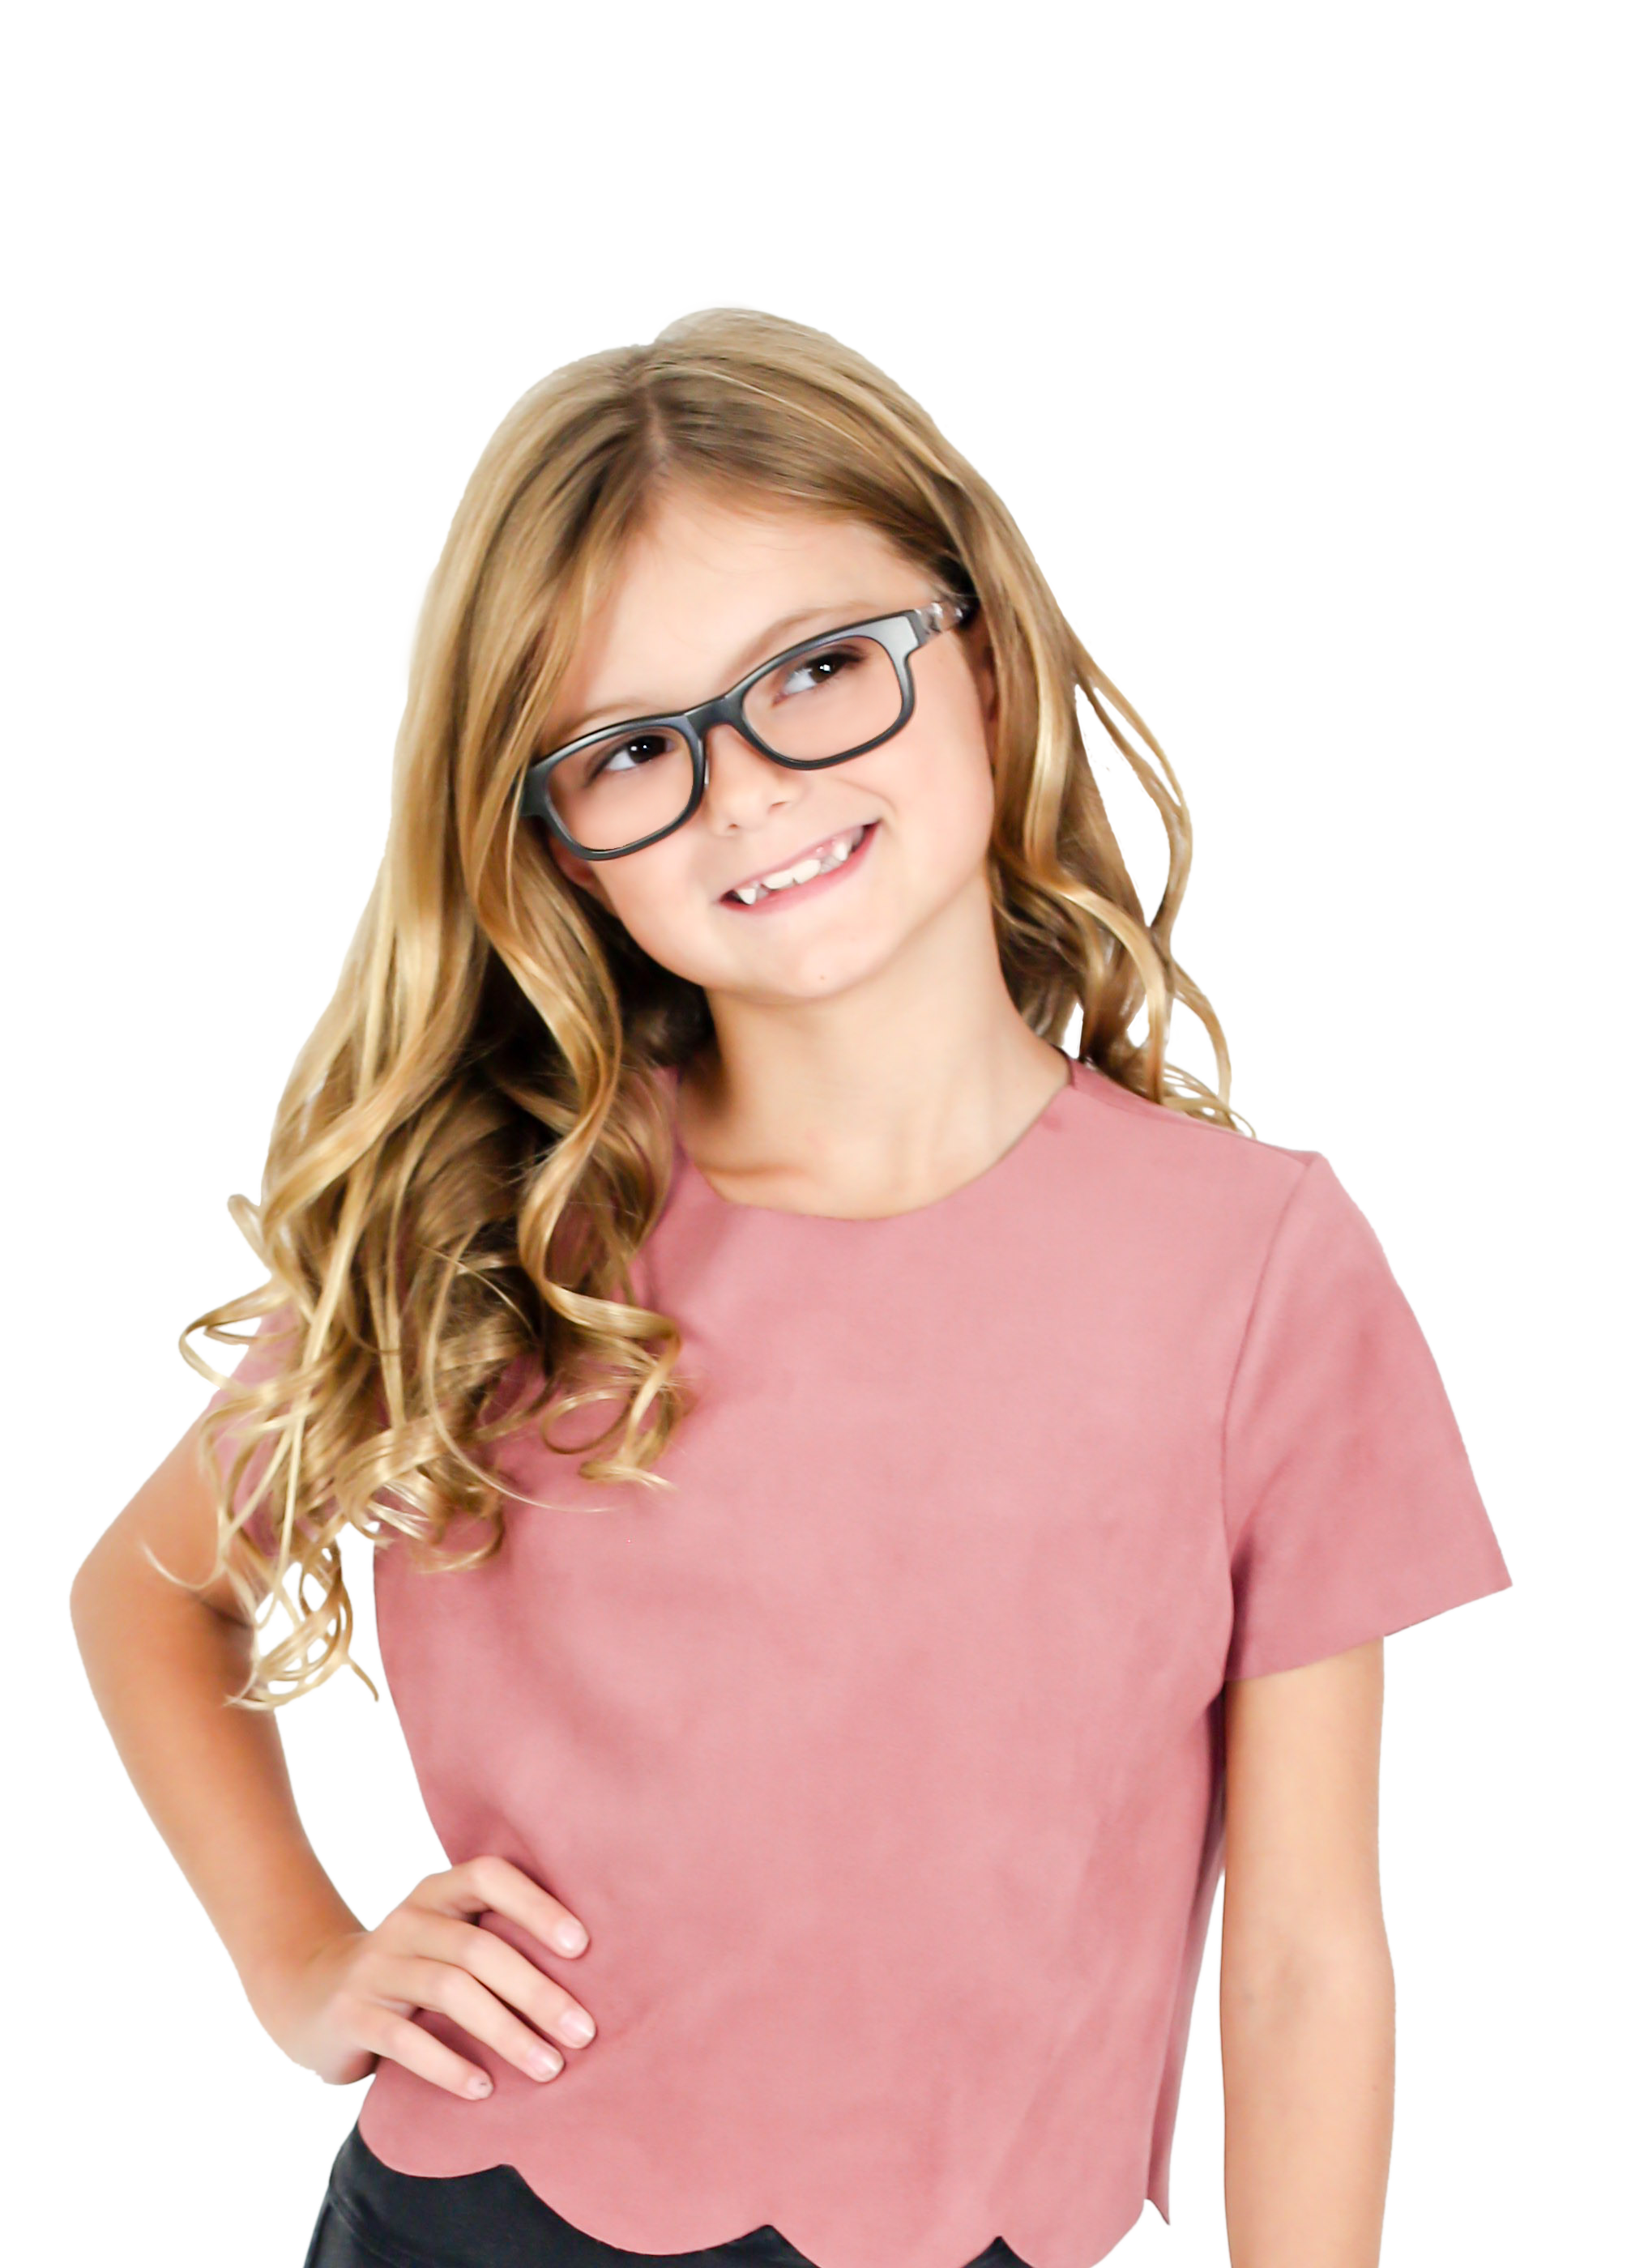 funoogles makes kids eyewear fun